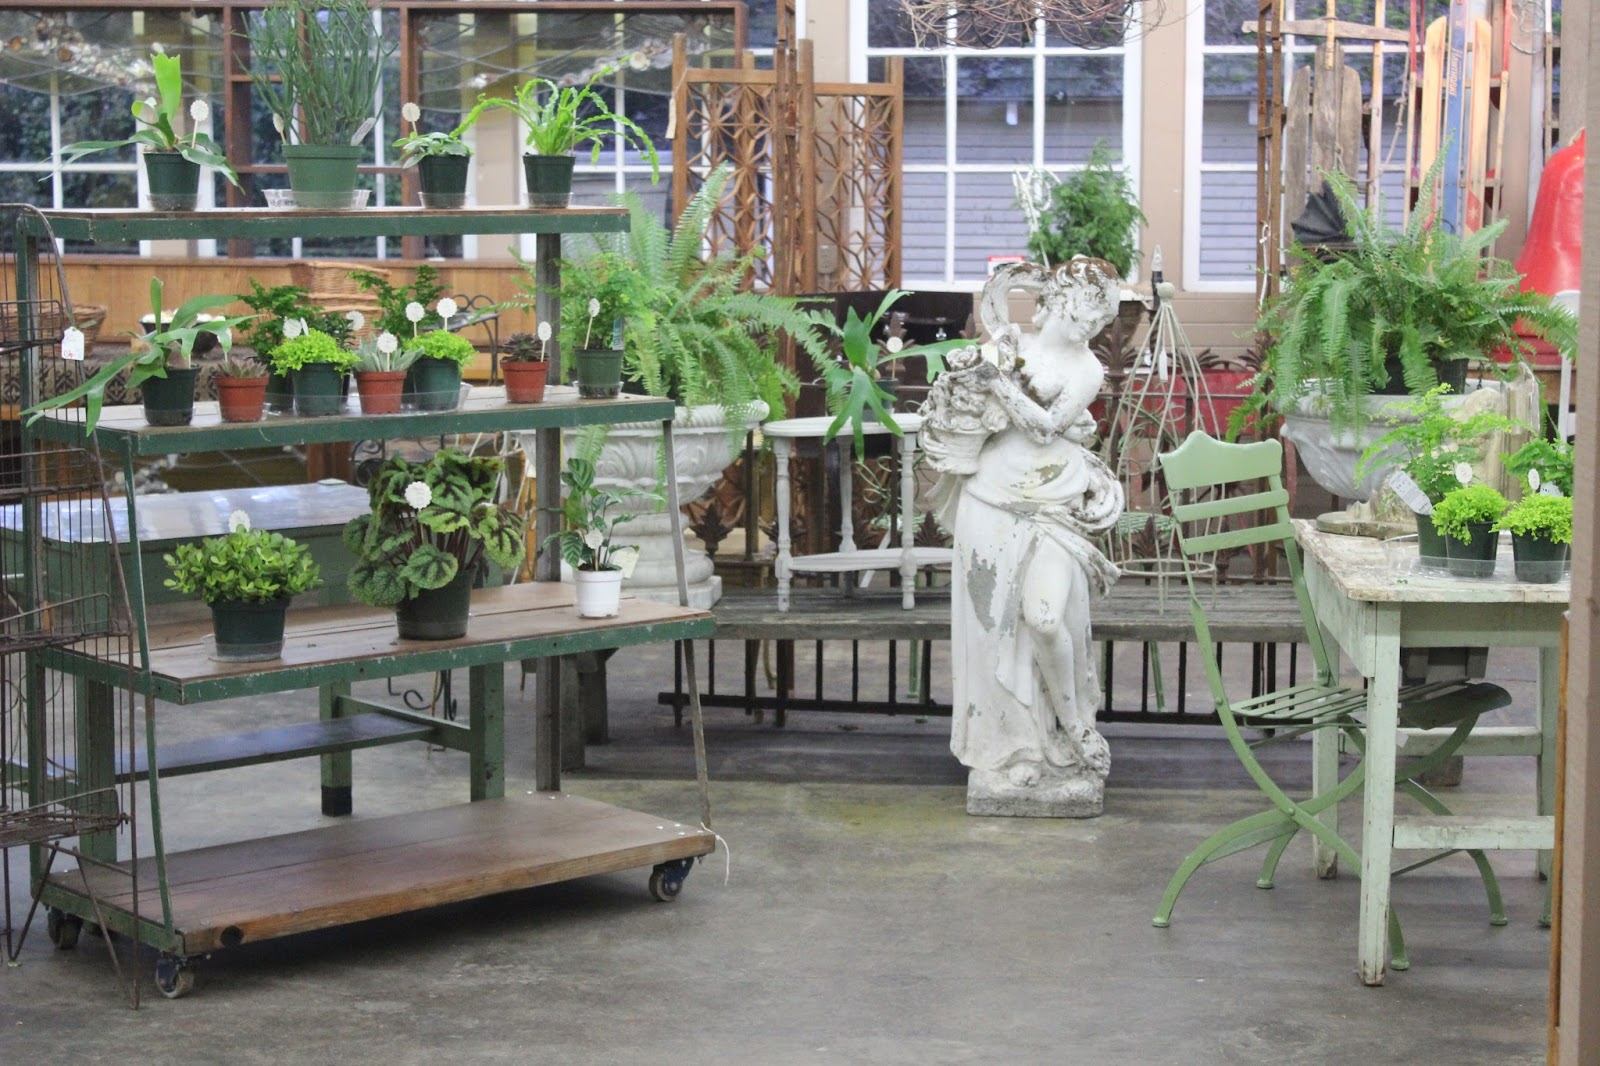 Monticello antique marketplace salvage garden for Portland spring home and garden show 2017